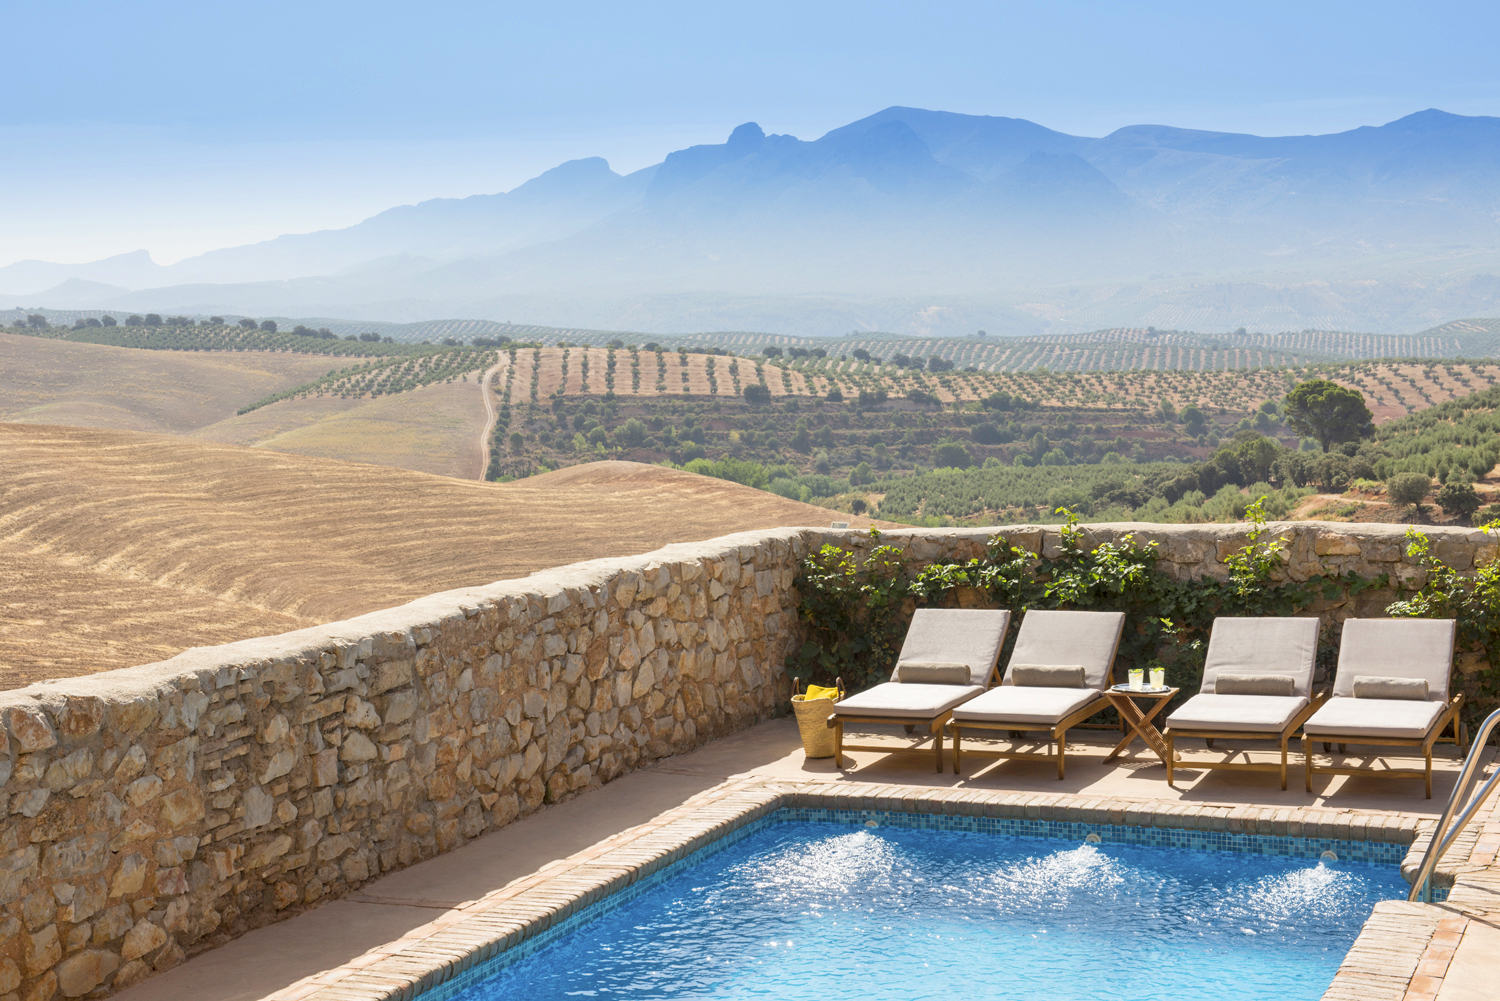 <strong>Hotels in Granada, Spain - Cortijo del Marques Pool Hotel</strong>